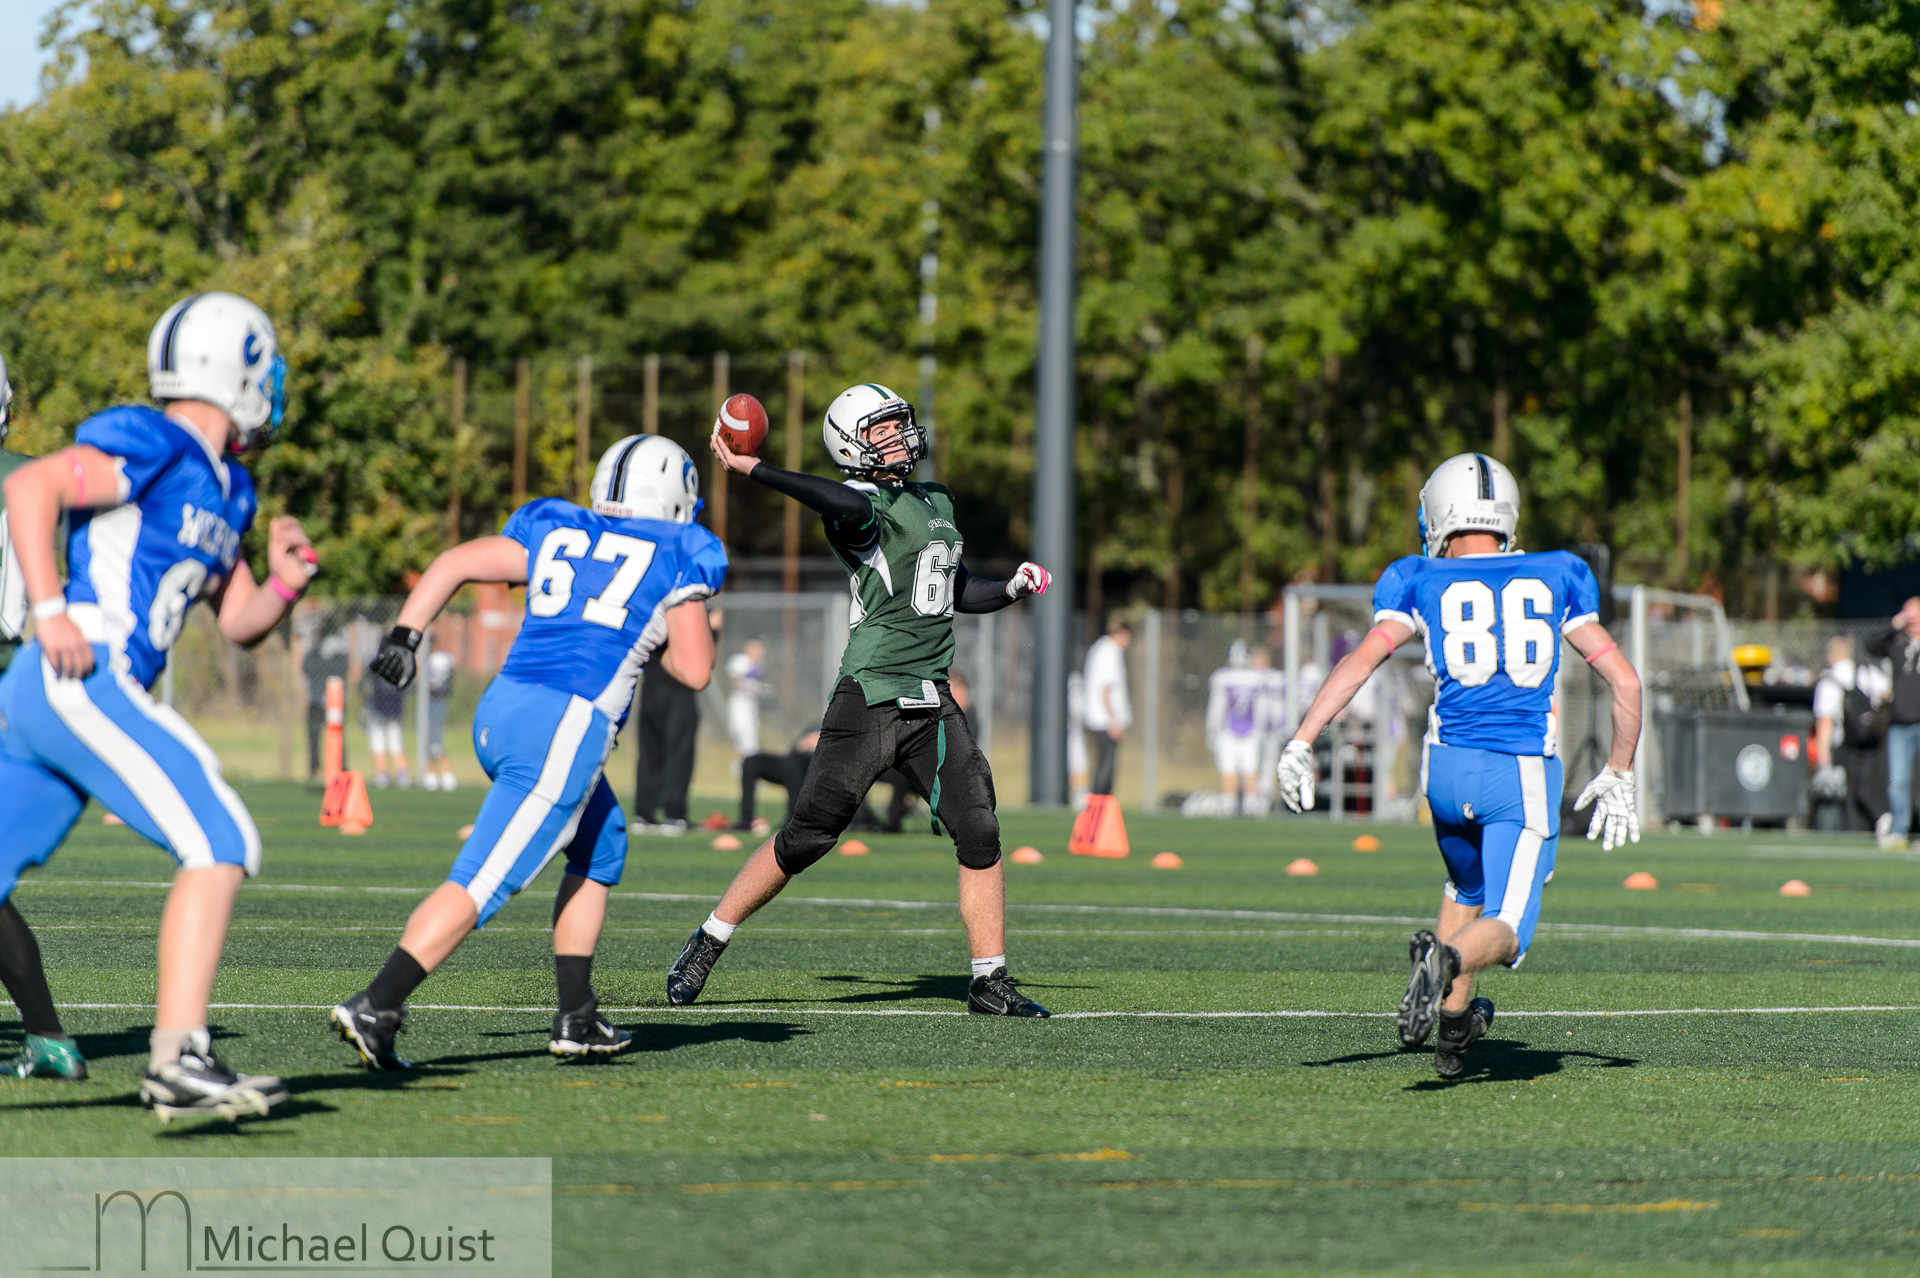 U16-RS-Bowl-2015-Ørestaden-Spartans-vs-Slagelse-Wolfpack-9